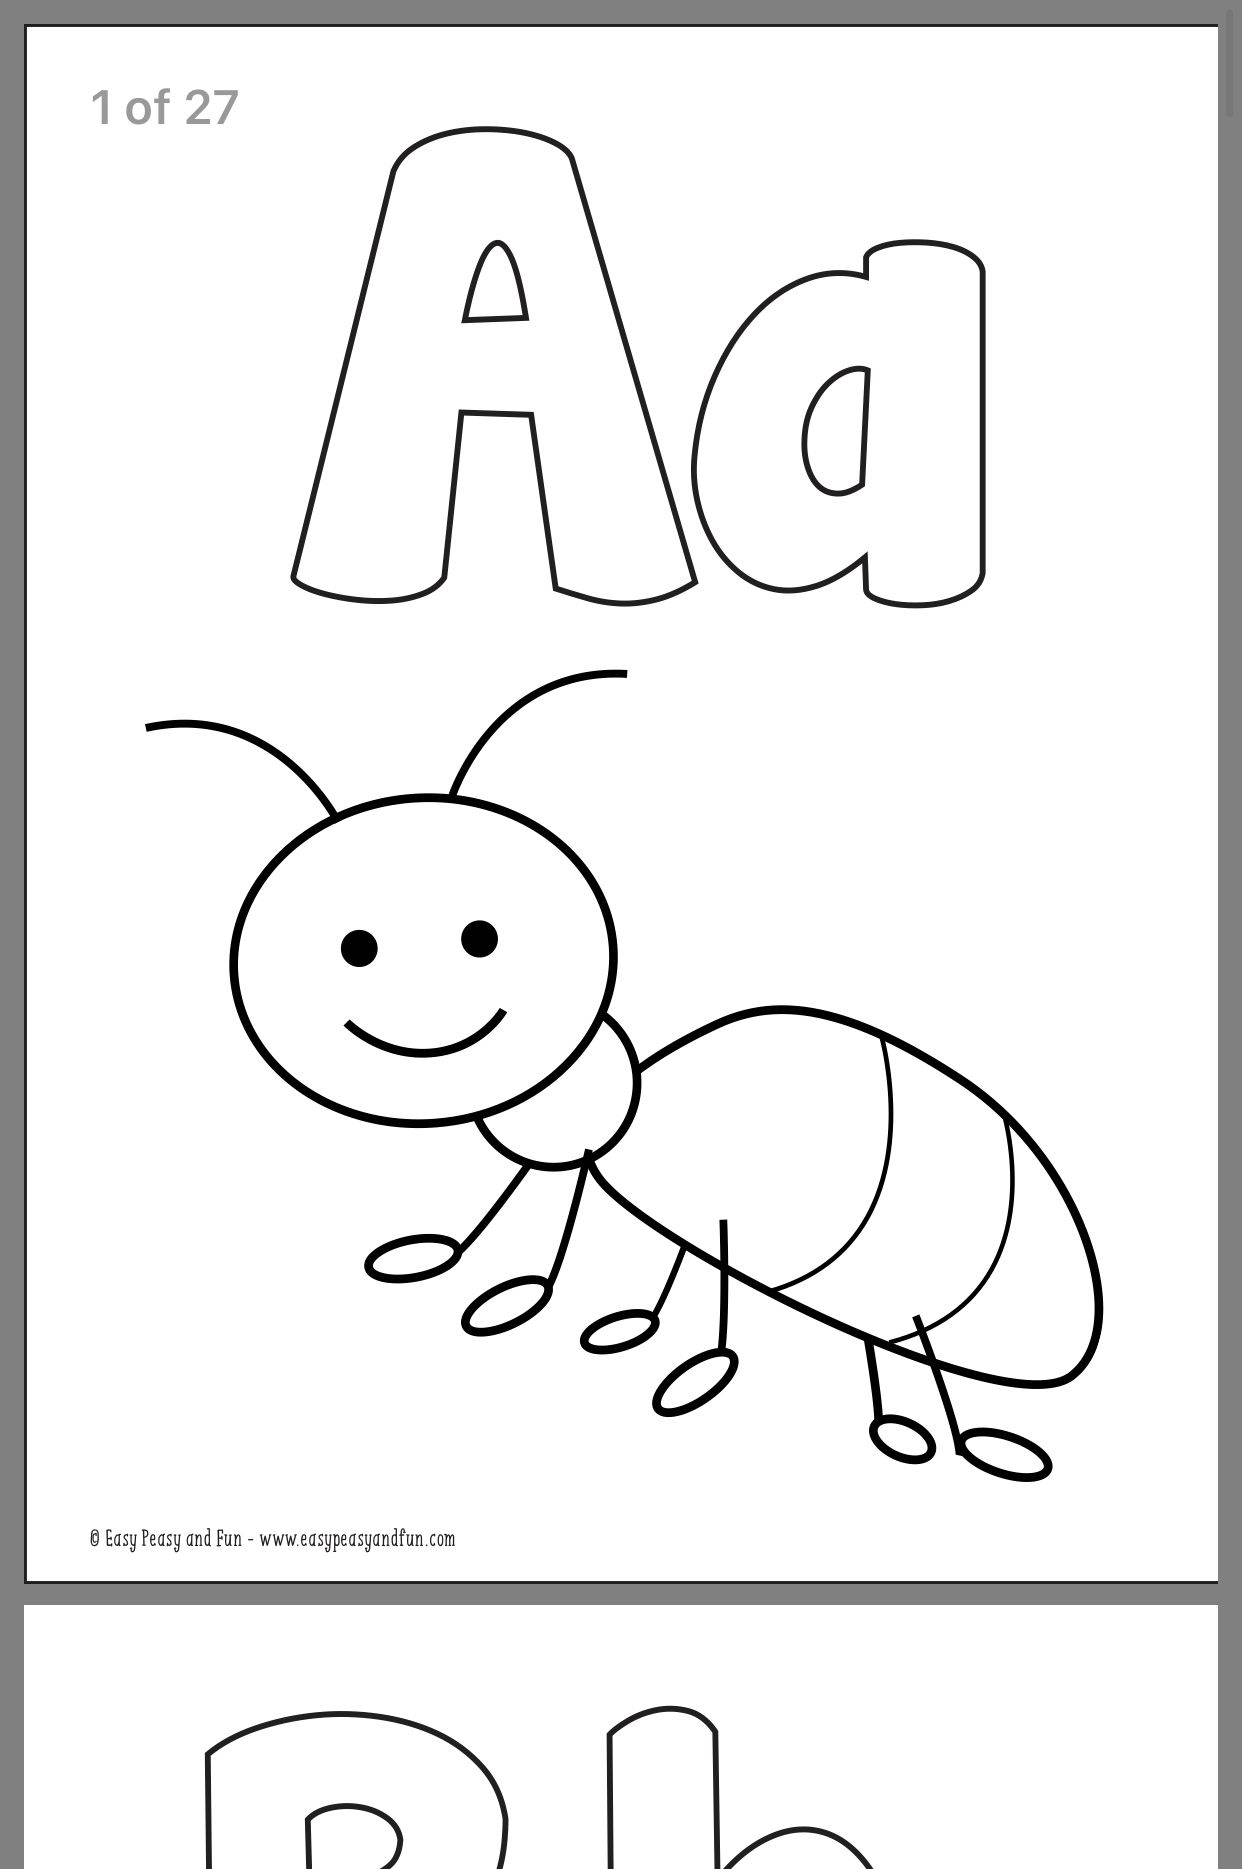 Pin By Kristina On Coloring Pages Color Activities Preschool Activities Preschool Color Activities